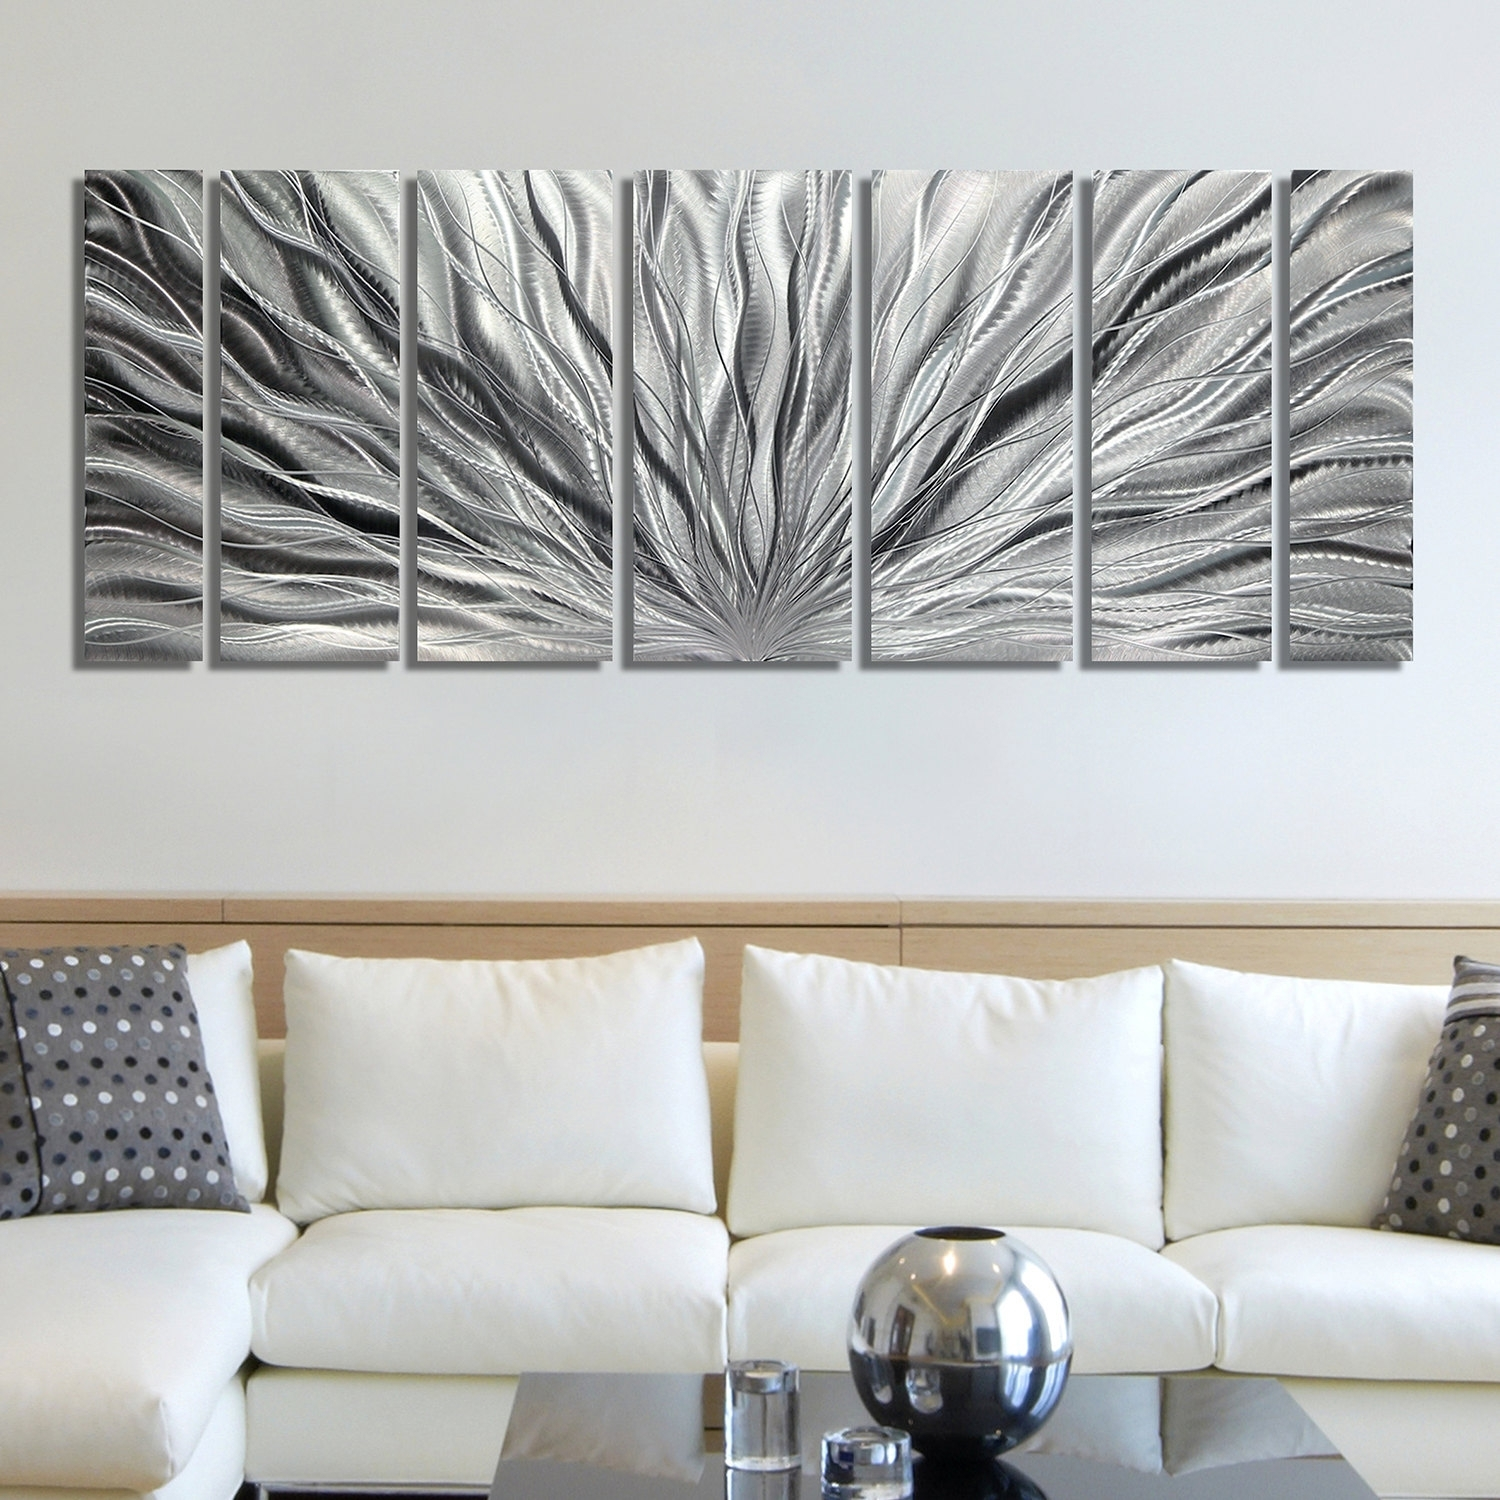 Silver Wall Art Cool Wall Decor On Sale – Wall Decoration And Wall With Silver Wall Art (View 13 of 20)